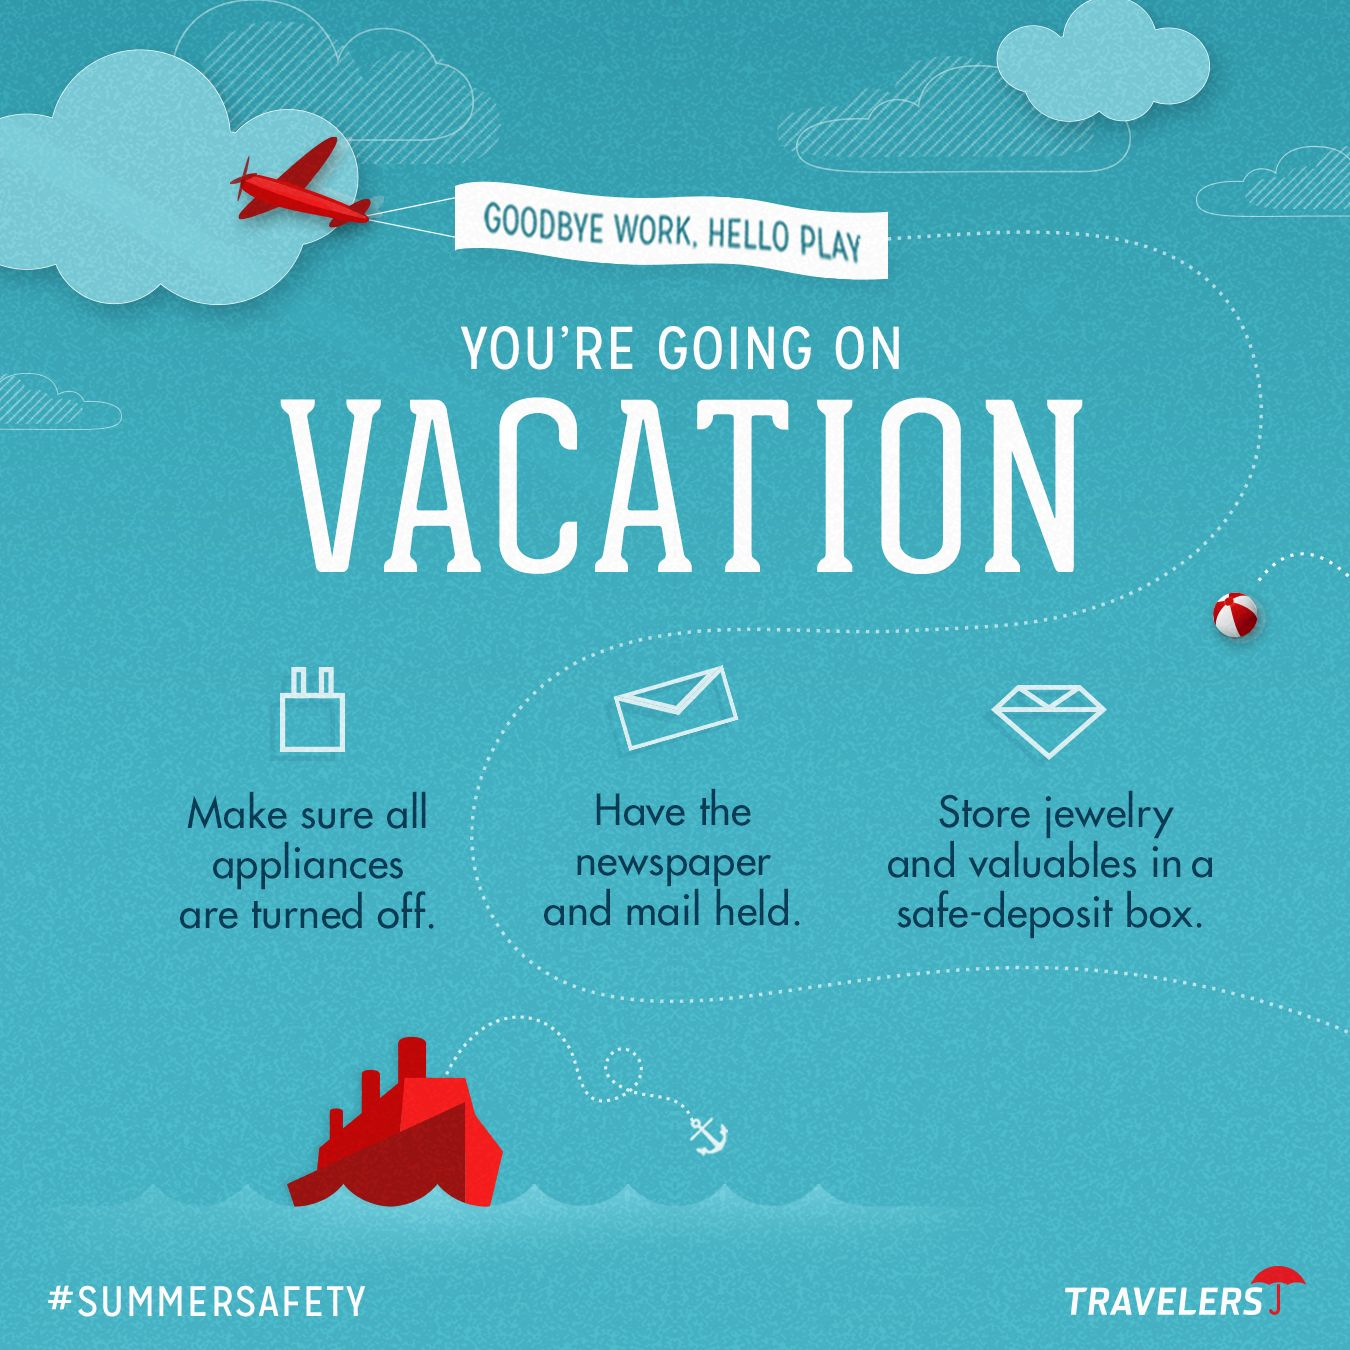 Vacation Checklist From Travelers Insurance Vacation Reads